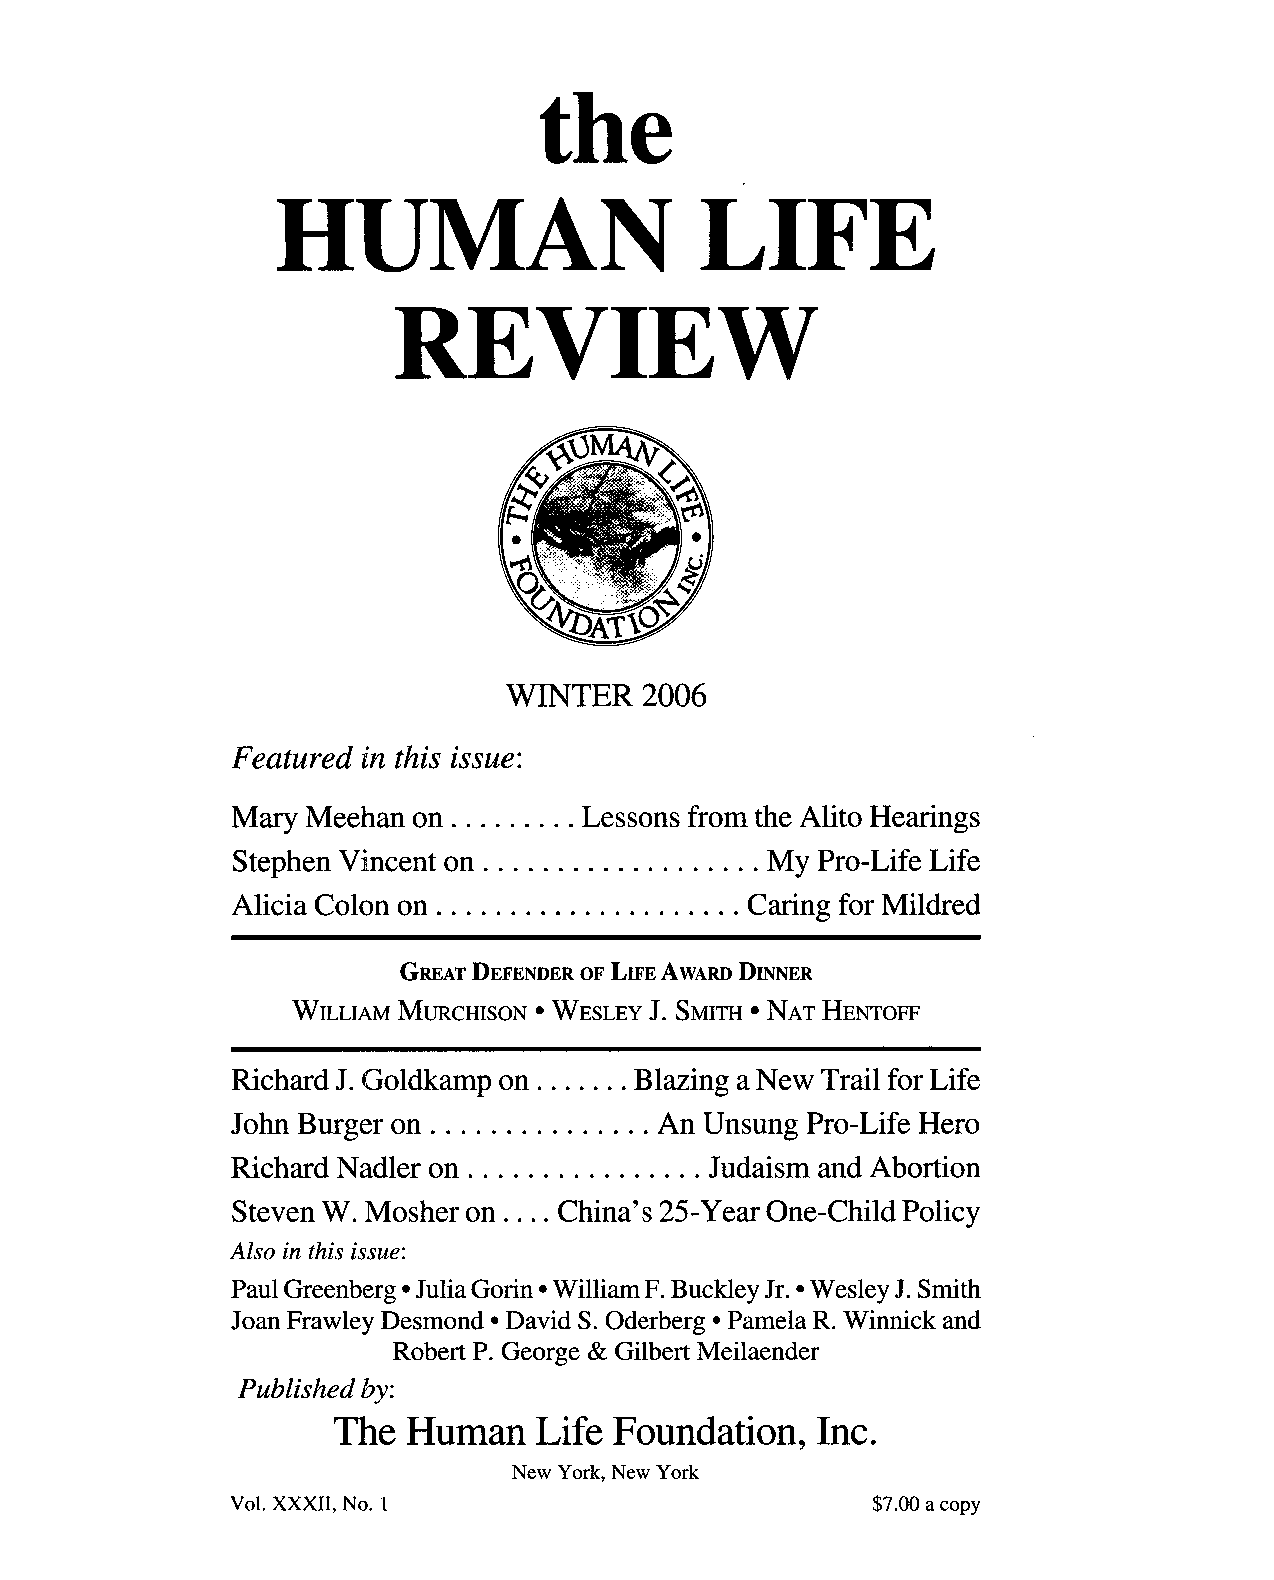 The Human Life Review Winter 2006 - The Human Life Review